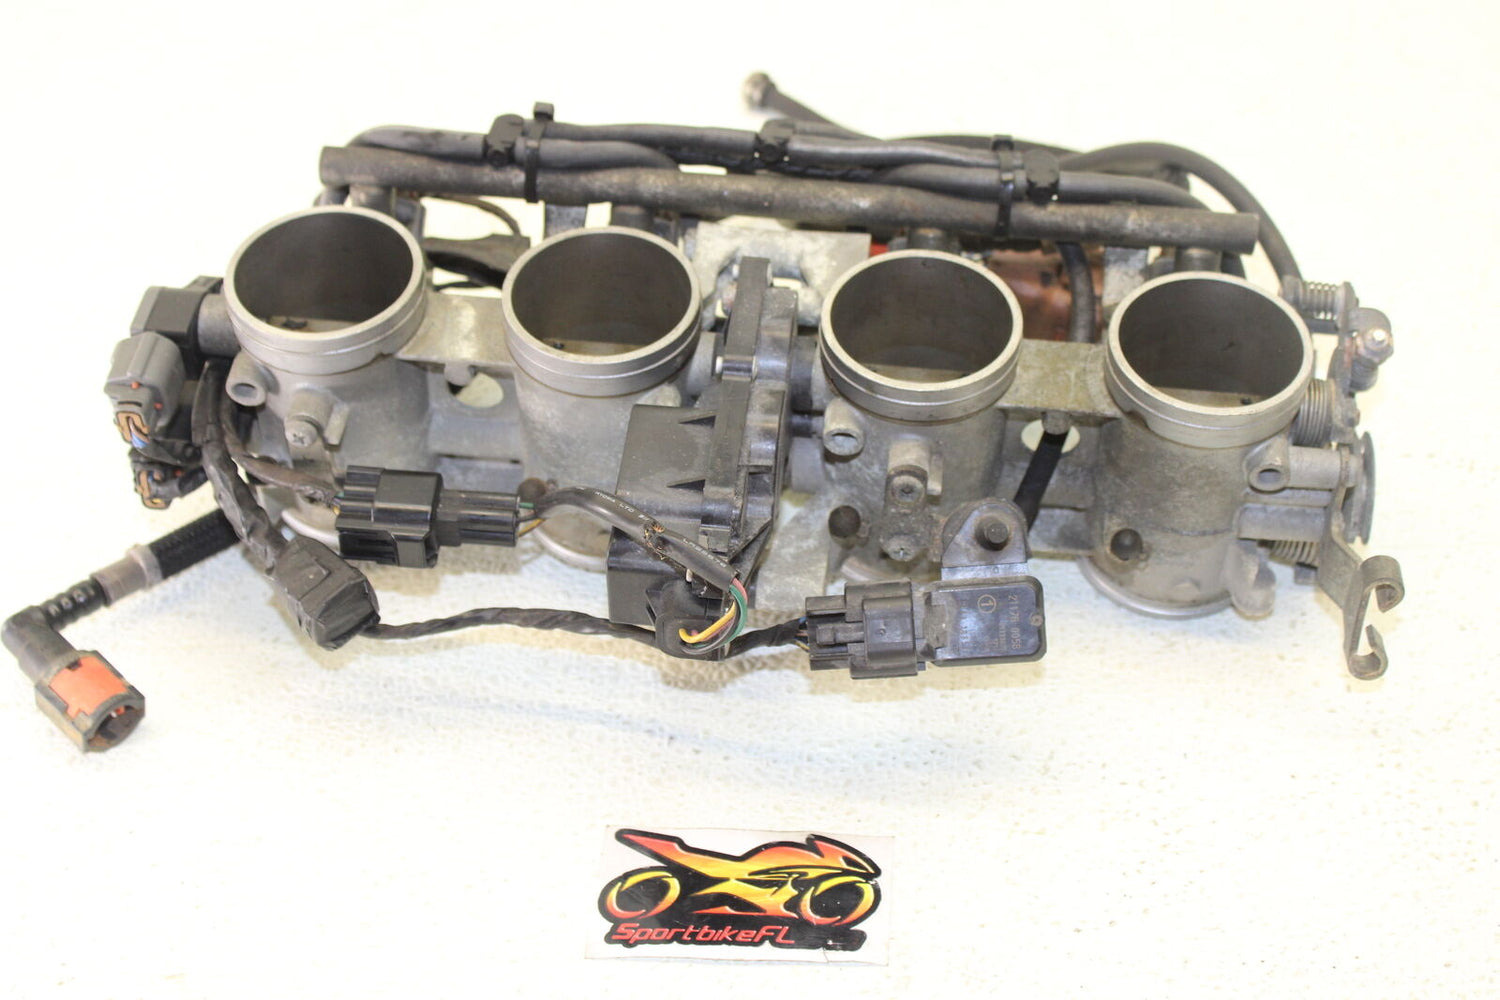 06-07 KAWASAKI NINJA ZX-14 ZX14 MAIN FUEL INJECTORS / THROTTLE BODIES OEM ENGINE